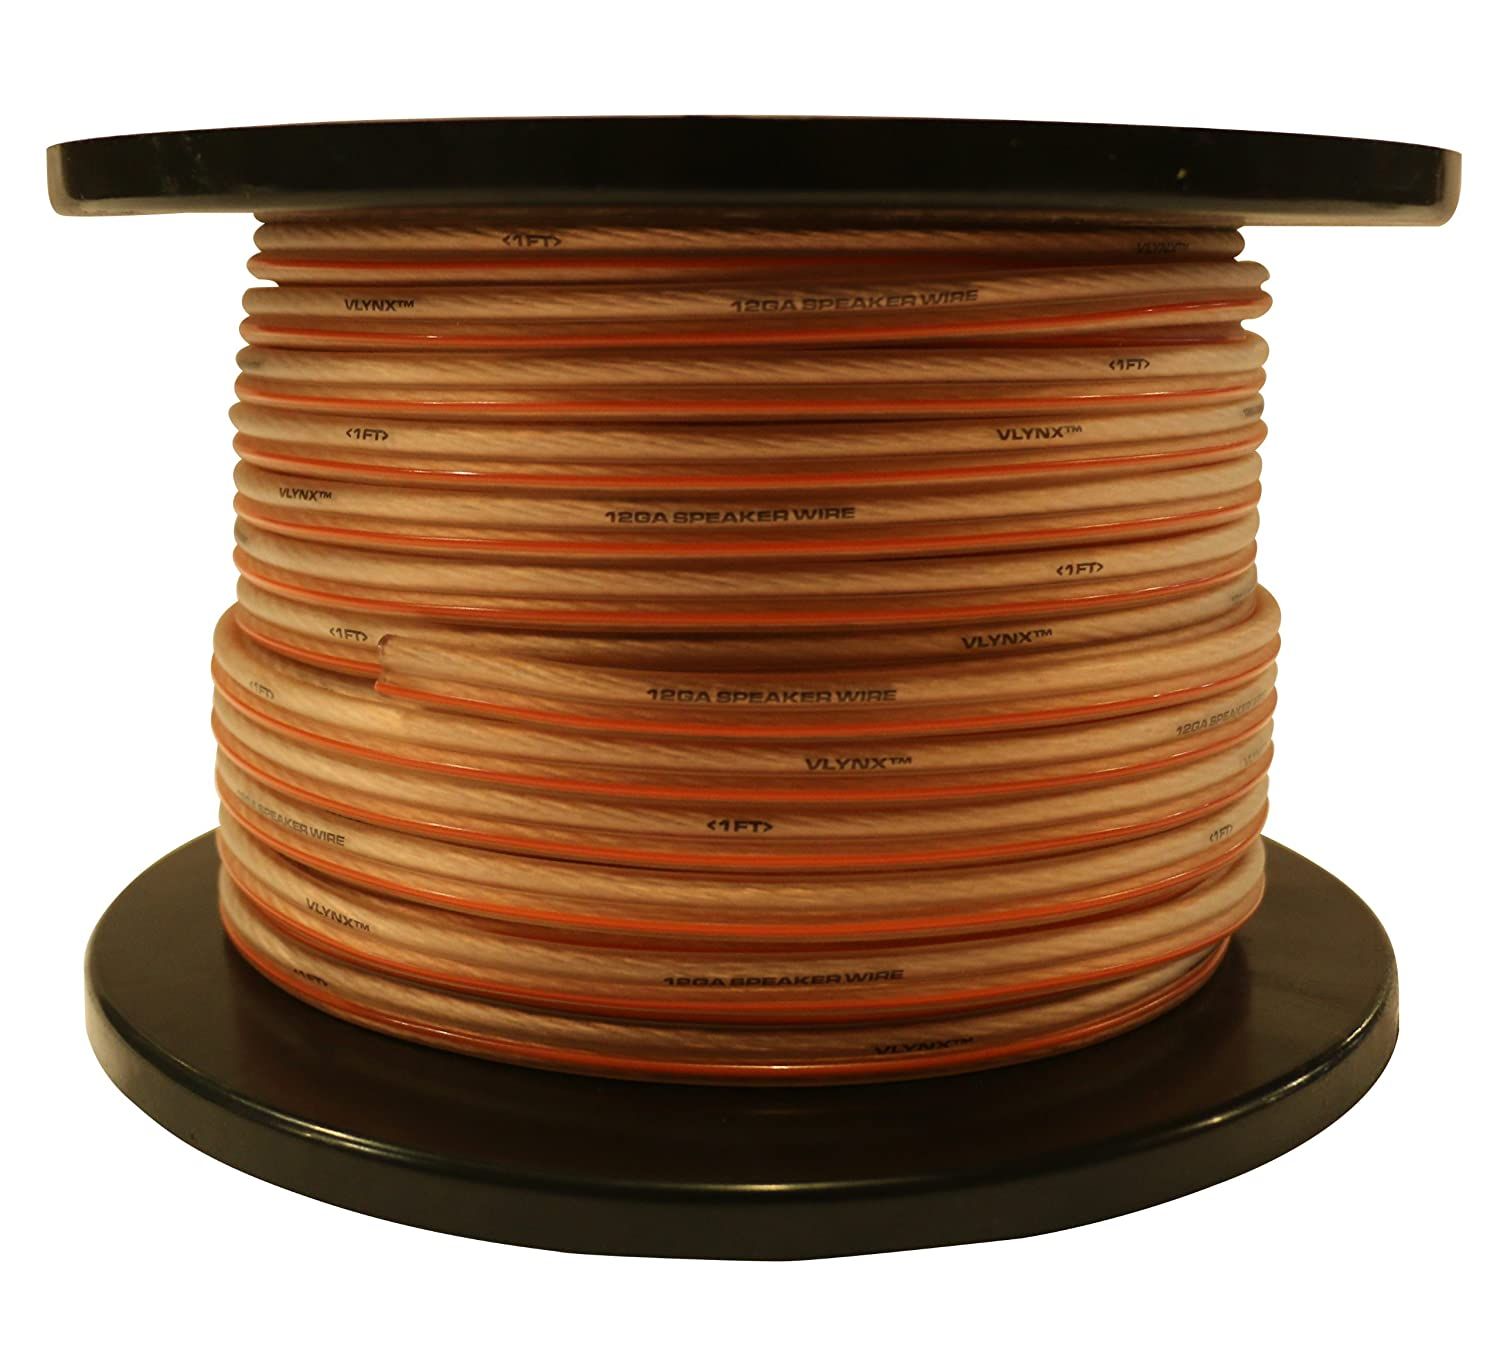 12 Gauge 200ft Speaker Wire audio installation TRUE 12GA Vlynx soft cable spool VLYNX12-200-1